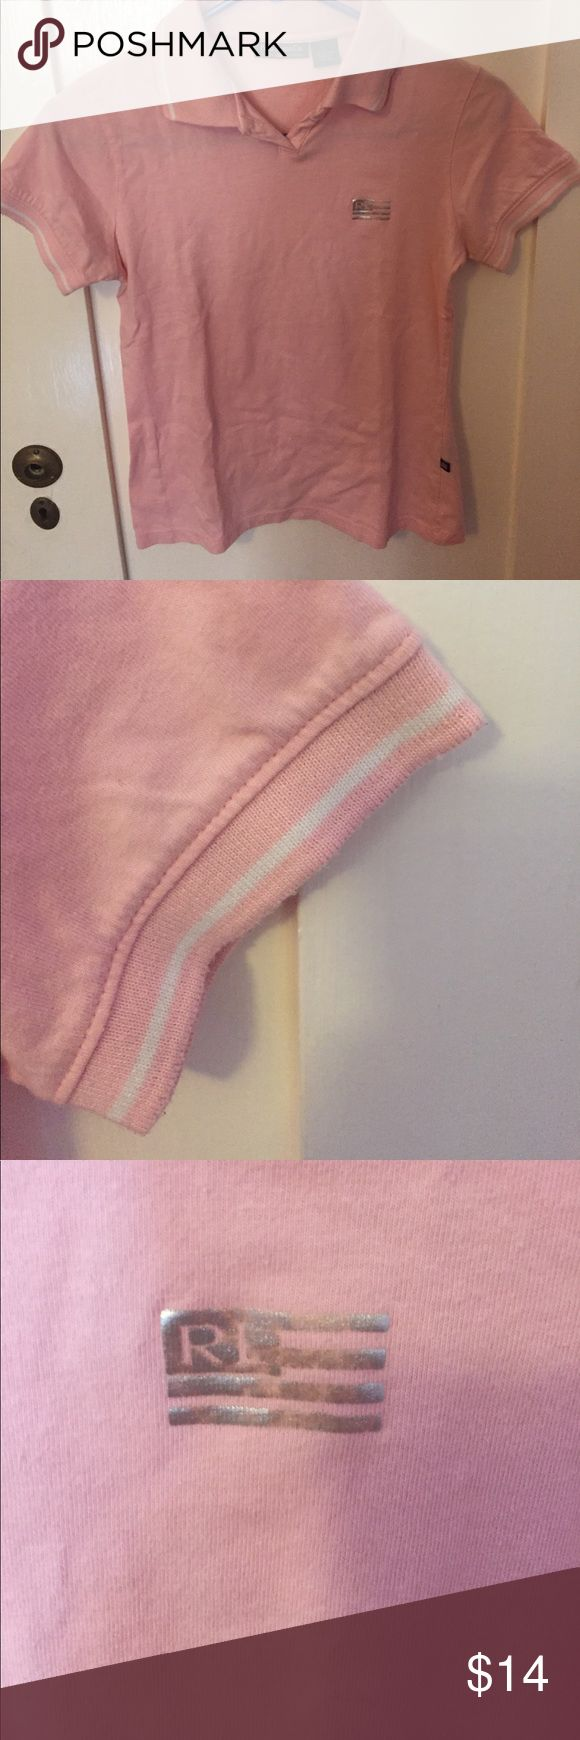 Light pink Ralph Lauren polo shirt. The flag on the front of the shirt is a little worn out and fading. I will iron the shirt before shipping. Ralph Lauren Tops Blouses